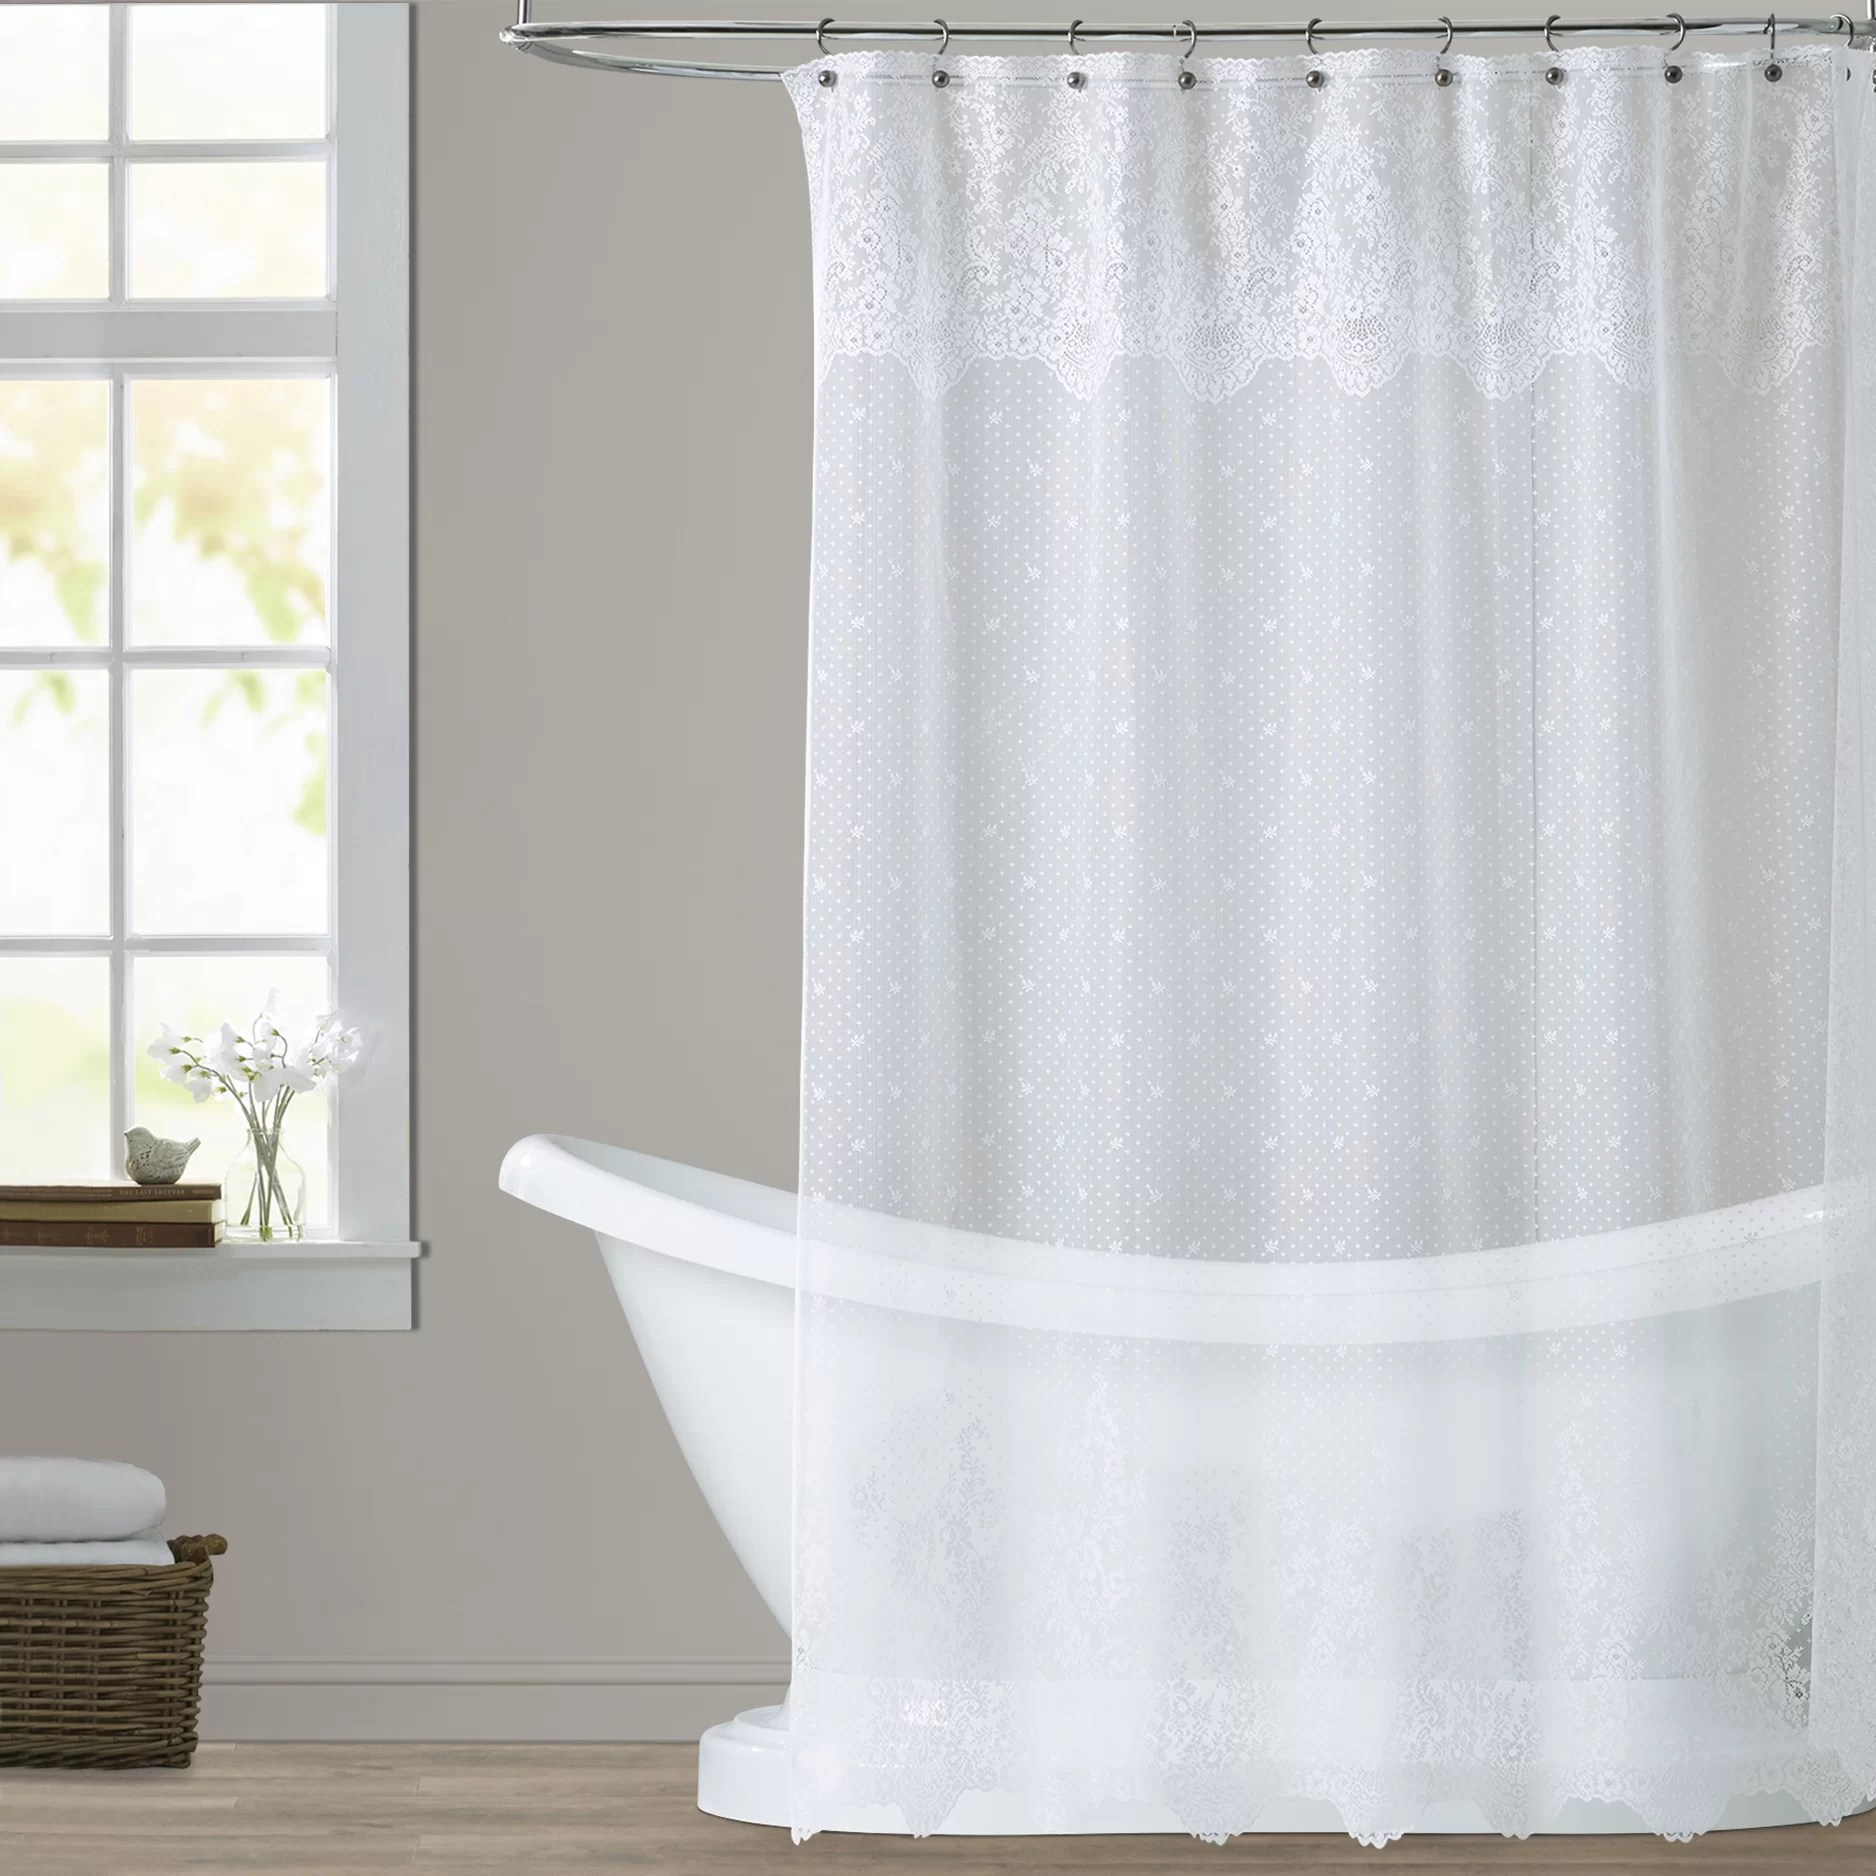 How To Make Shower Curtain Victor Single Shower Curtain